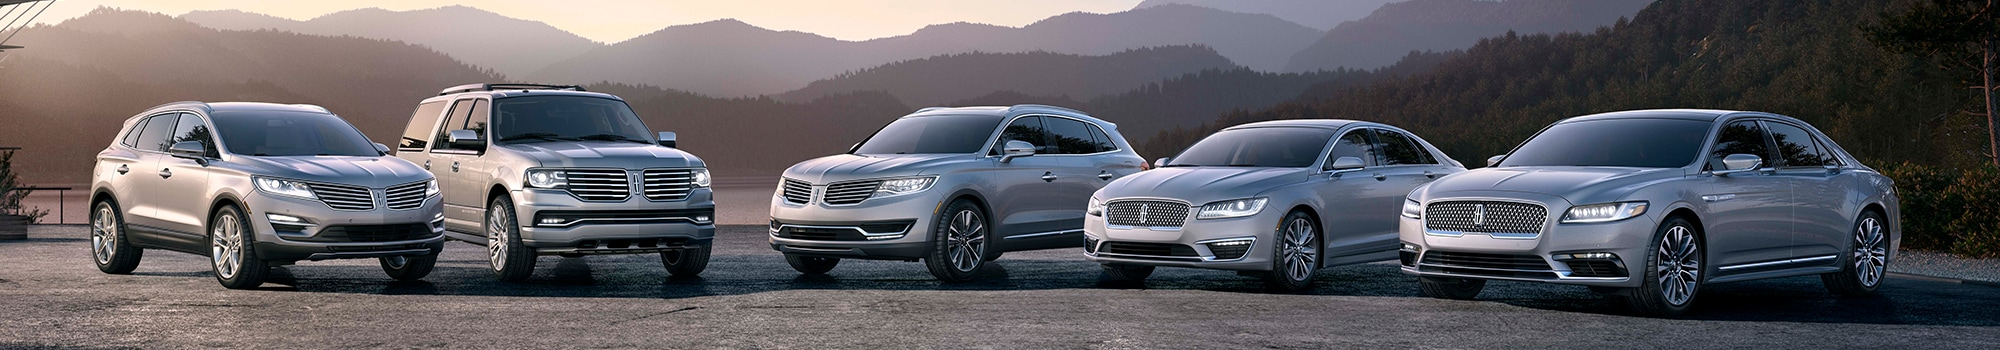 ny or lincoln available new a dealer near albany htm buy performance dealership lease mkz